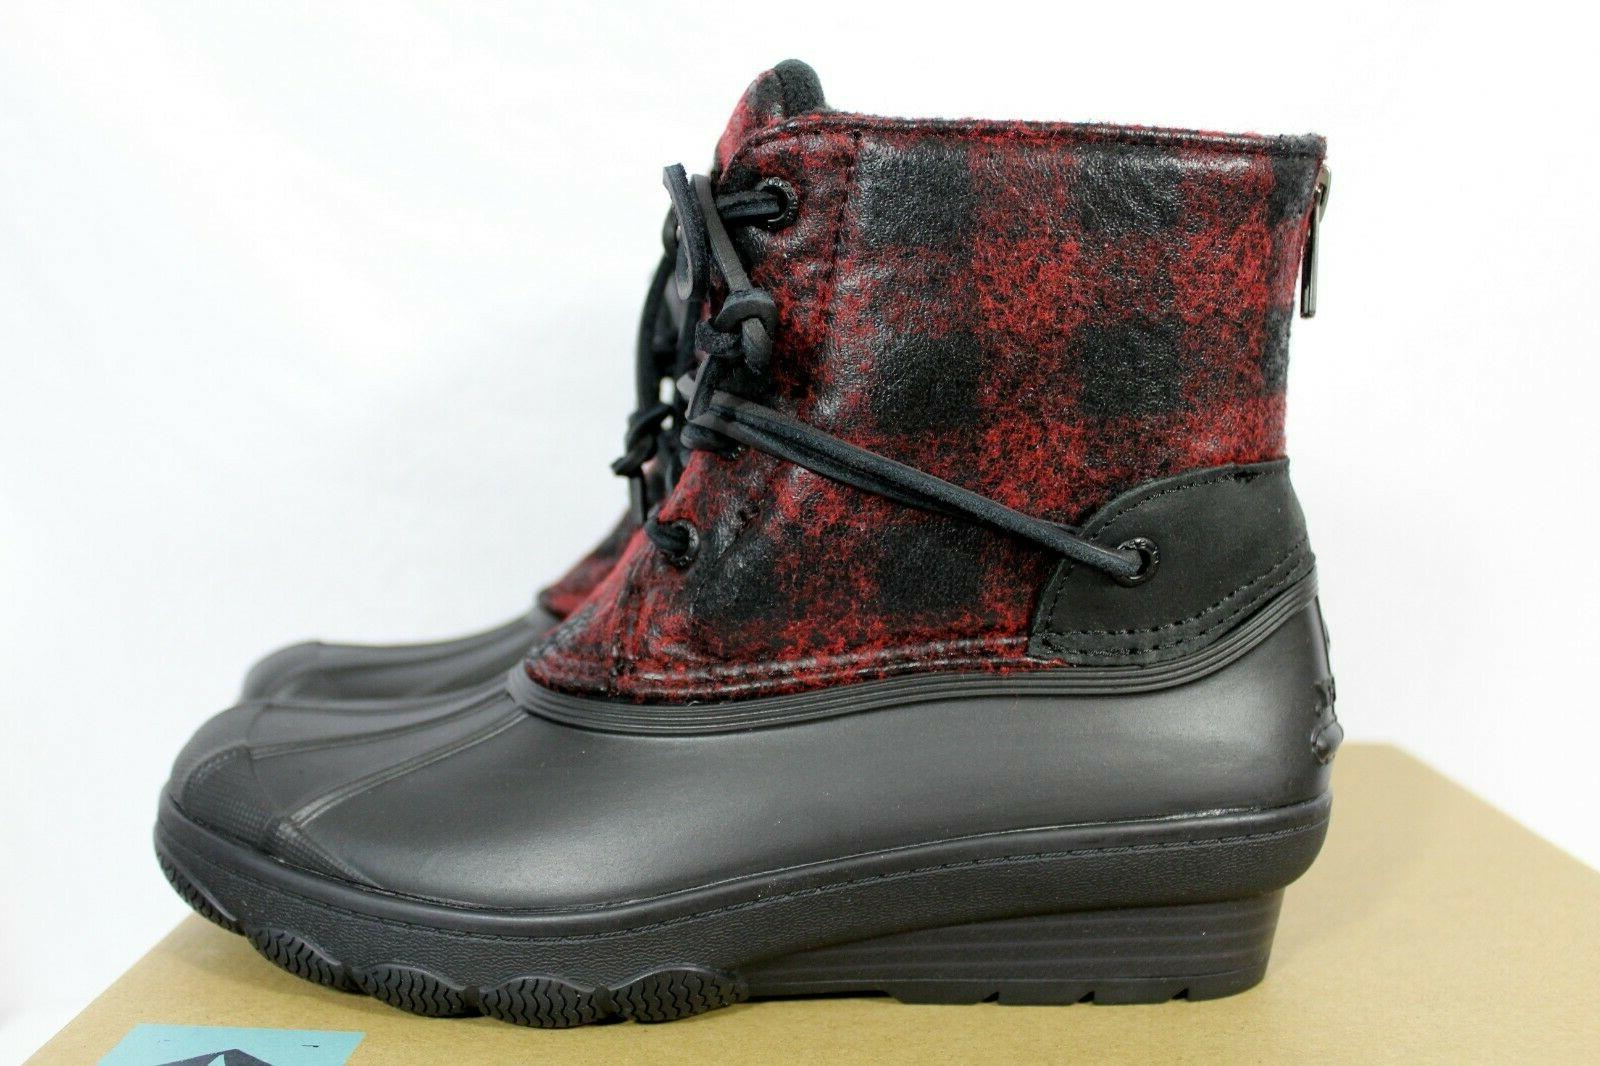 SPERRY Women's Duck Boots Red Plaid Size 5.5